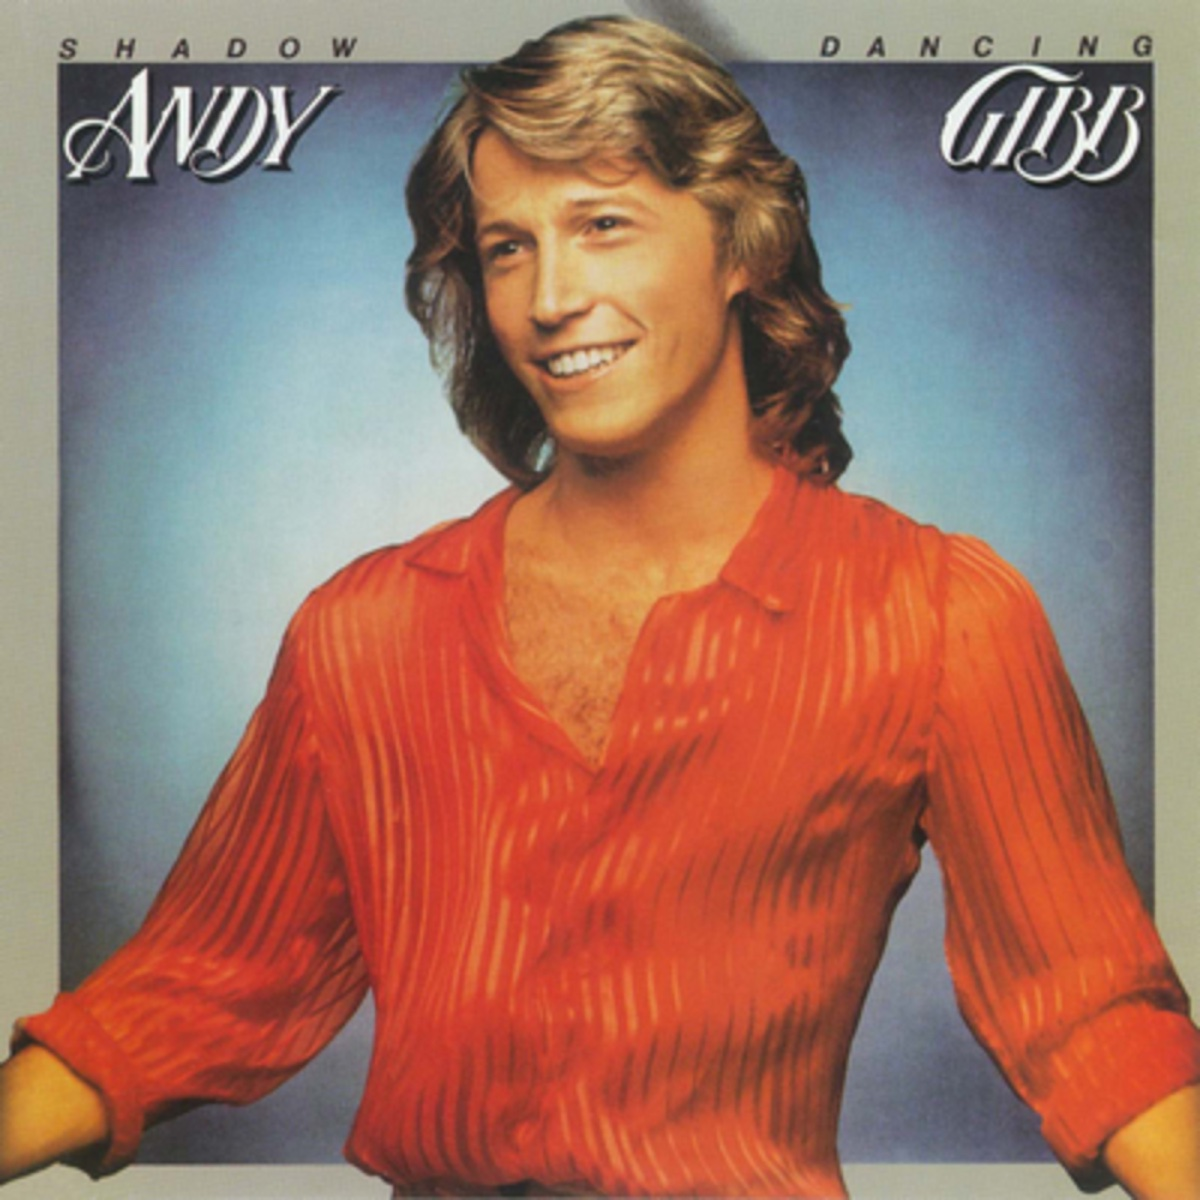 """Andy Gibb """"Shadow Dancing"""" album cover"""